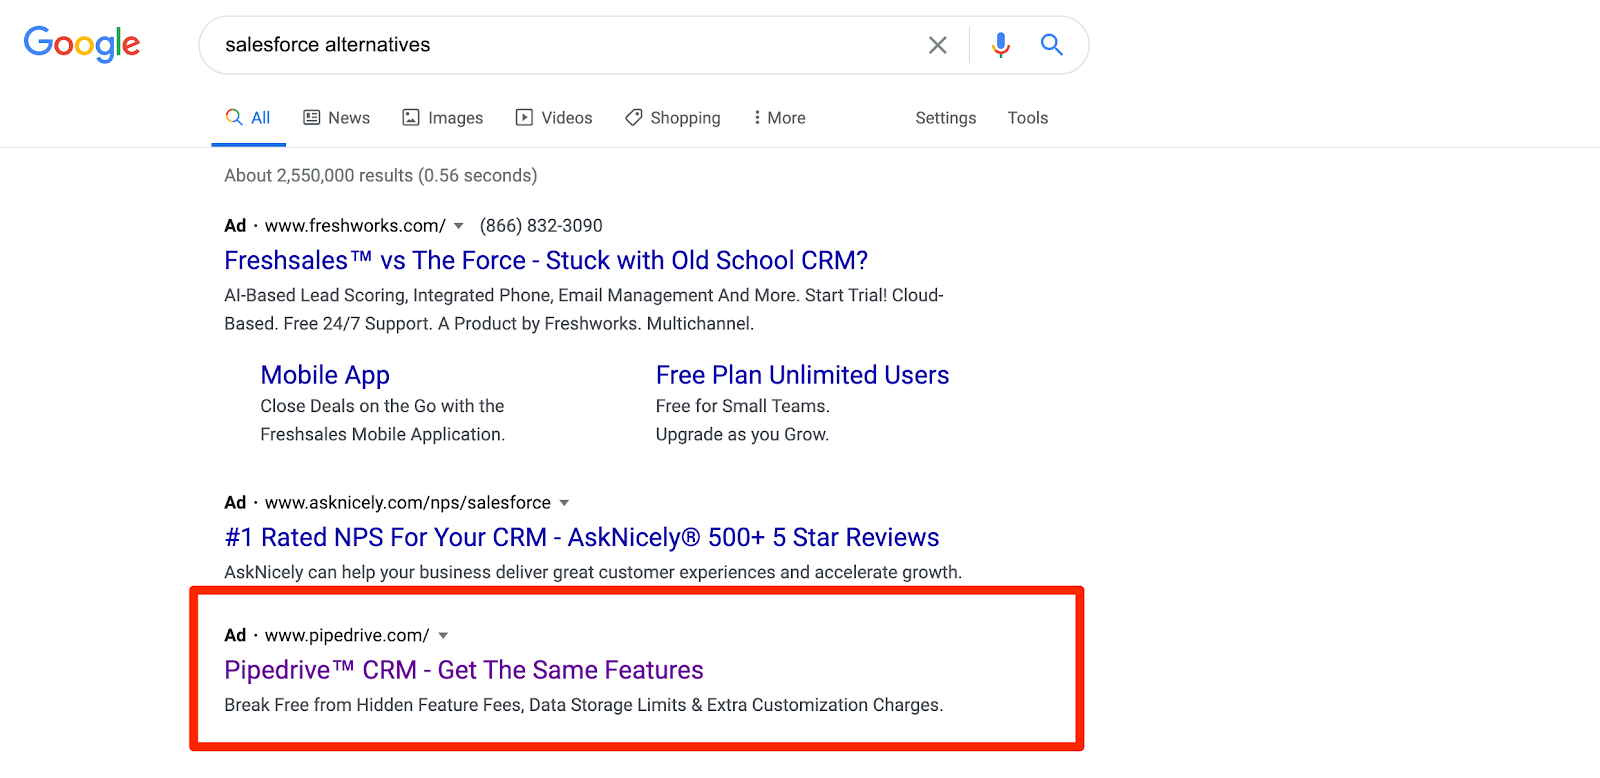 salesforce alternatives google search